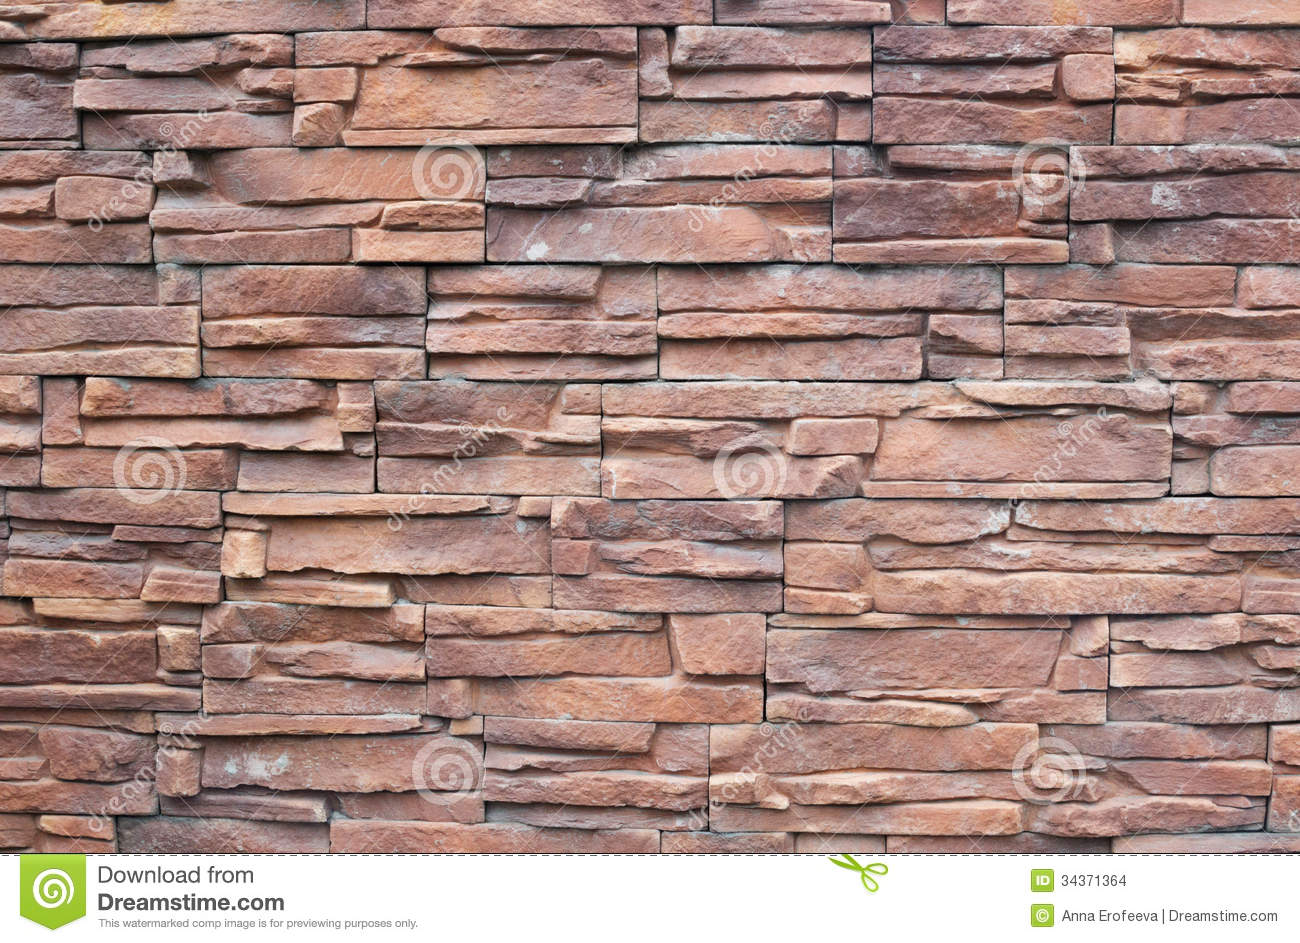 Fragmento de la pared de la piedra decorativa imagenes de - Piedra decorativa pared ...